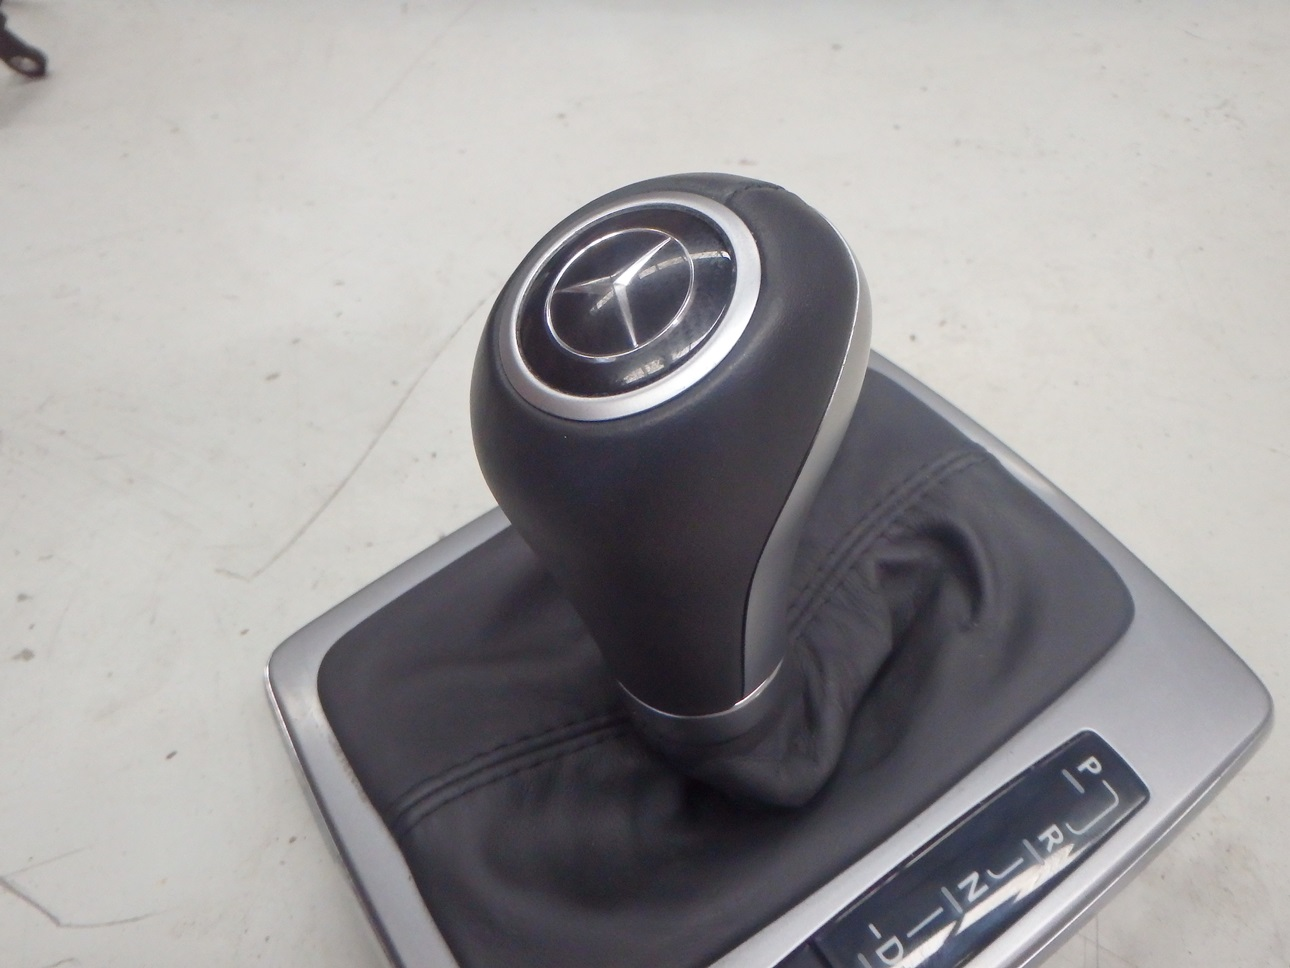 Mercedes benz c63 amg 2009 w204 interior gear shifter boot for Mercedes benz shift knob replacement